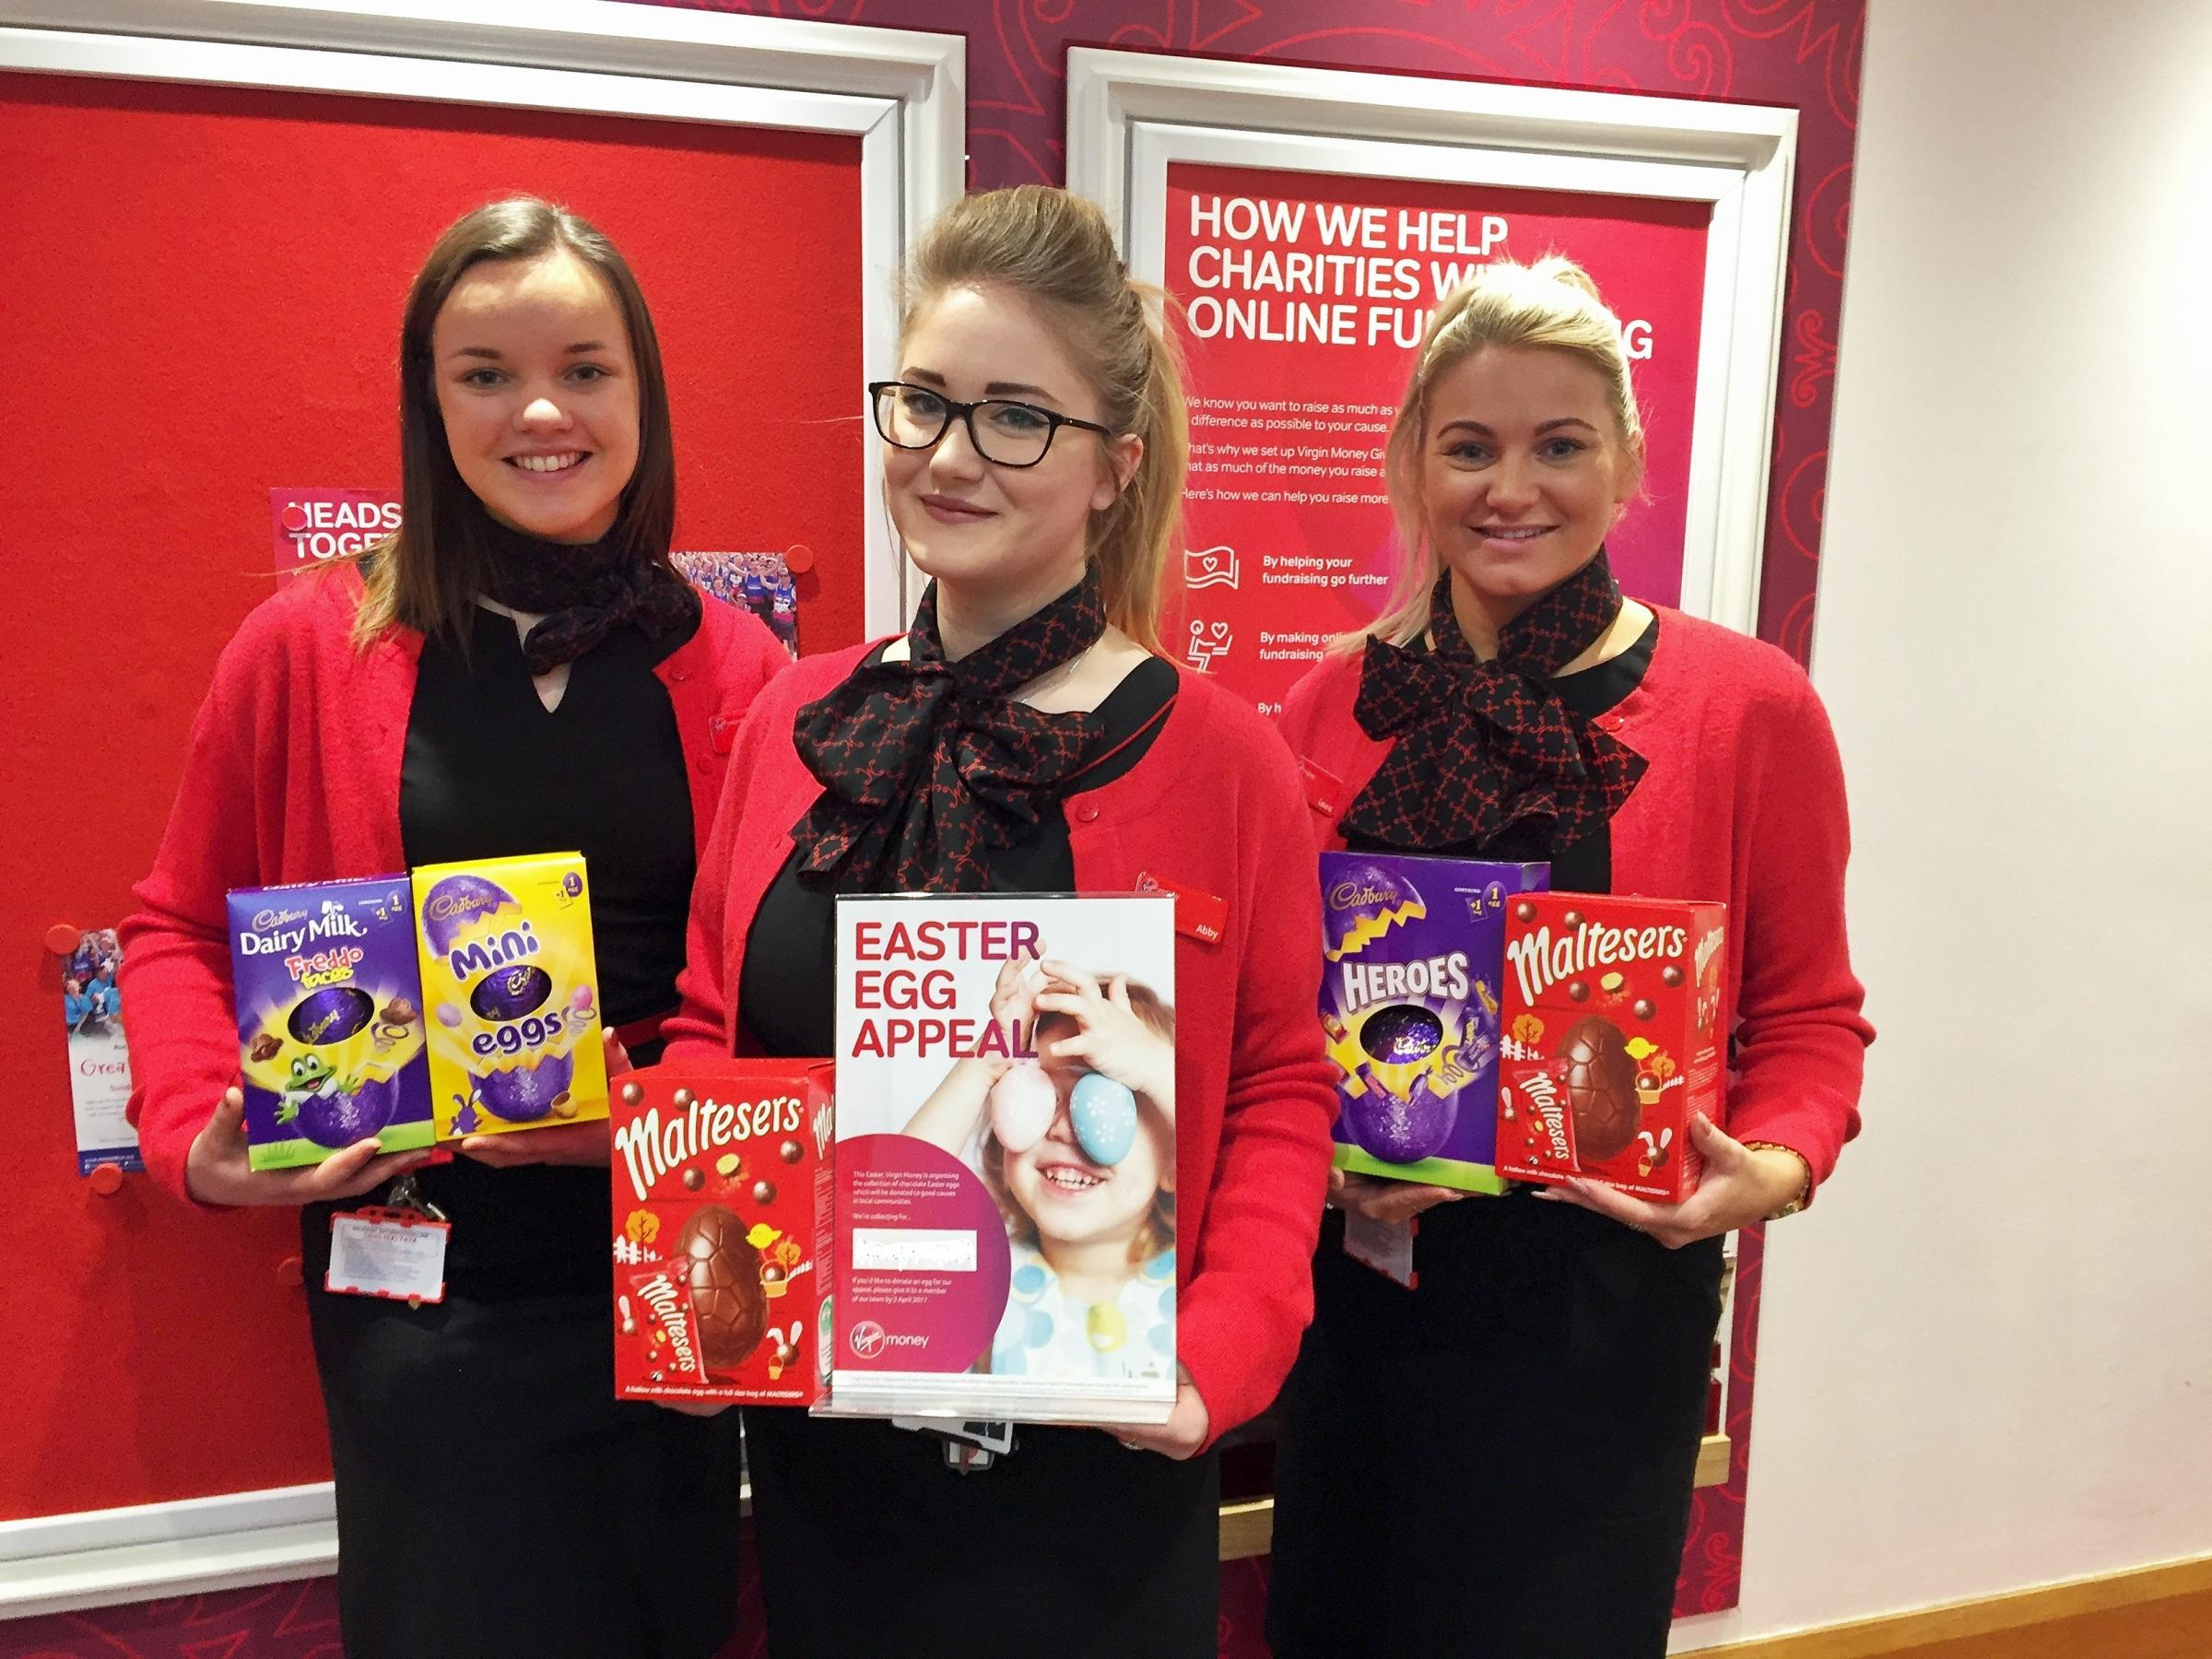 EASTER: Virgin Money Store colleagues with some of the donated Easter Eggs from this year's local charity collection